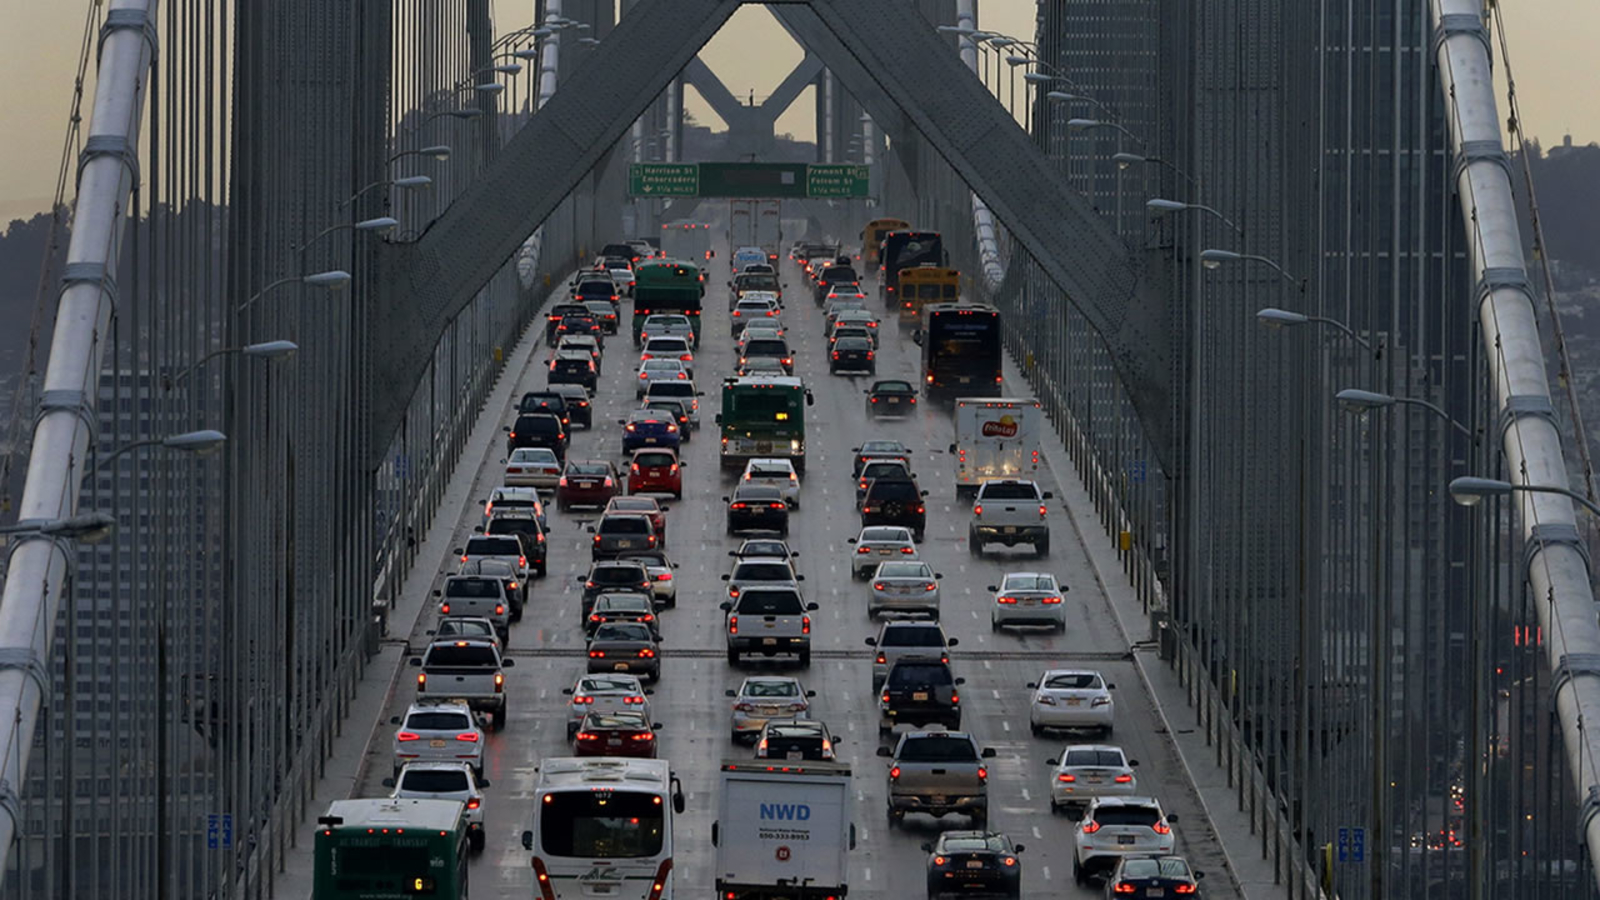 Memorial Day weekend travel to be 2nd busiest in 20 years, AAA says